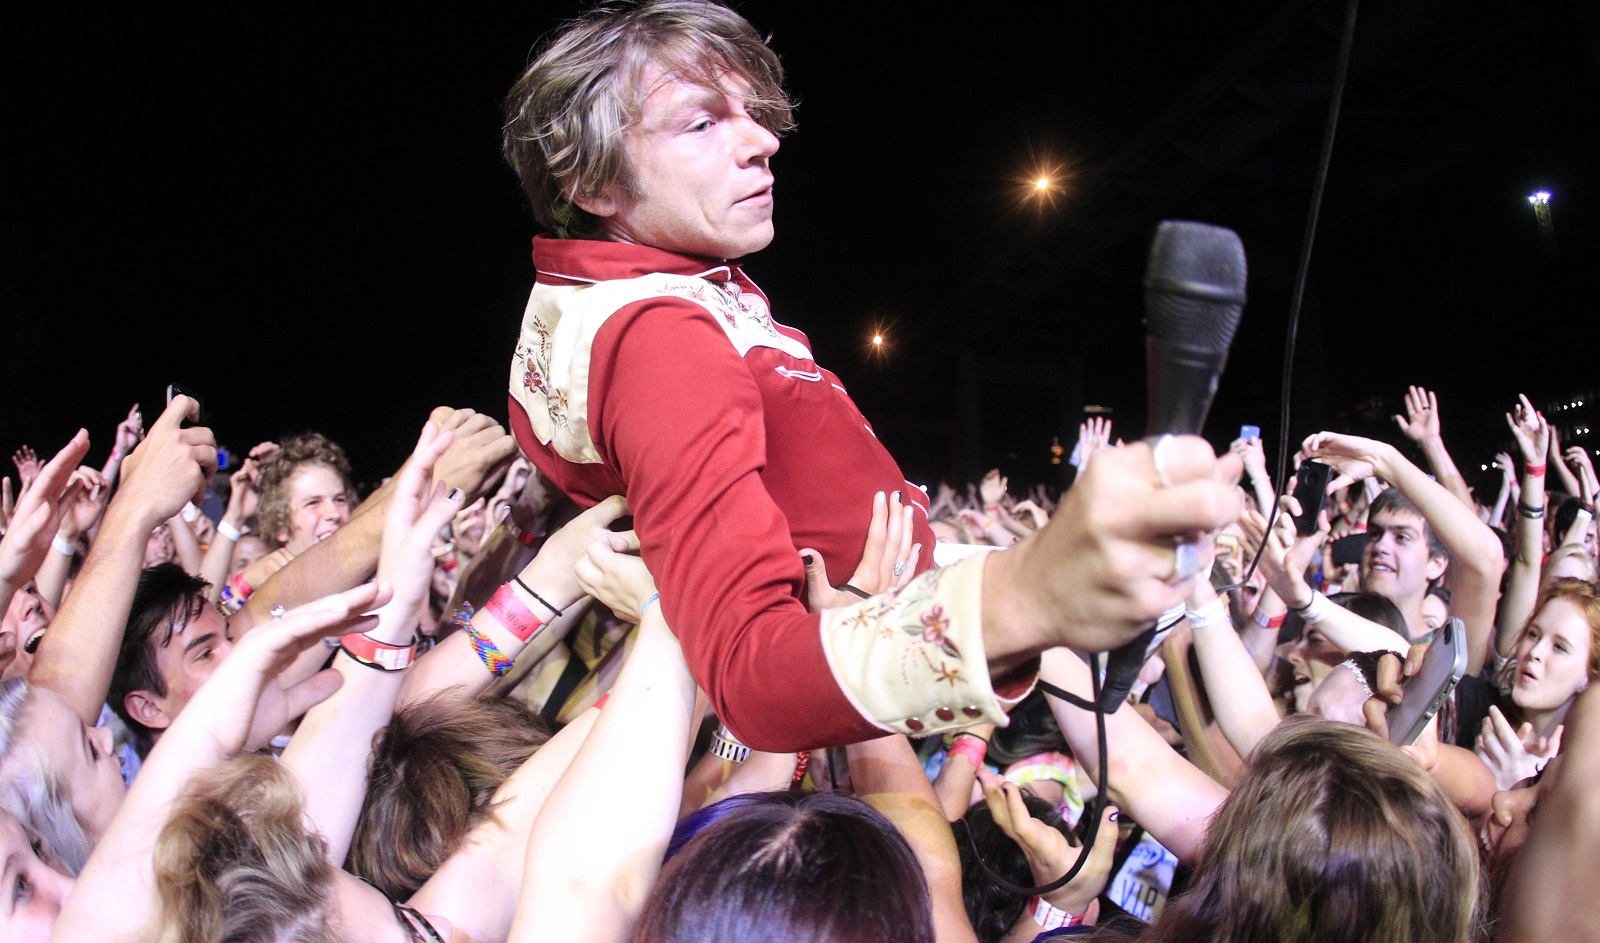 Cage the Elephant lead singer Matt Schultz entertains the crowd at Kerfuffle at Canalside on July 26, 2014. His band stole the show at Alternative Buffalo's Spring Fling, Jeff Miers wrote. (Harry Scull Jr. /Buffalo News file photo)